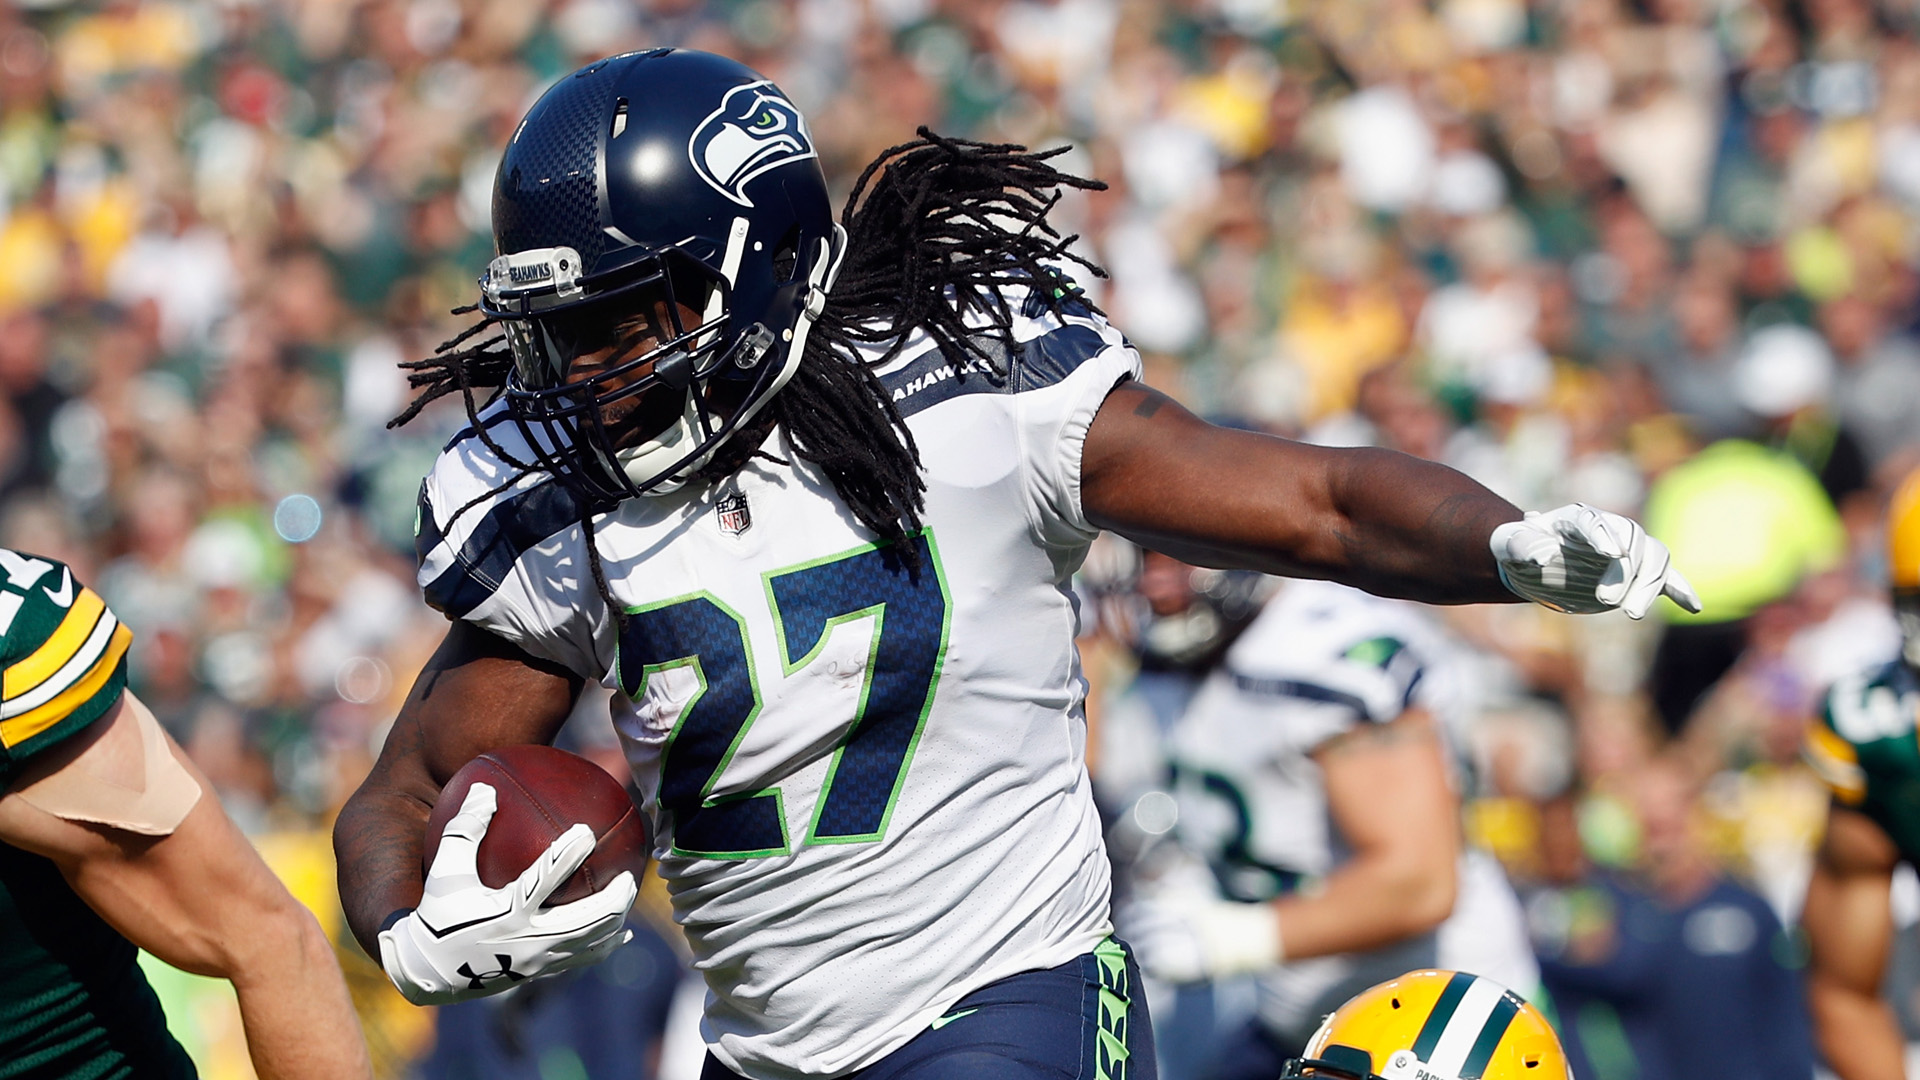 Eddie Lacy perfectly illustrates the weirdness of his weight goals being public